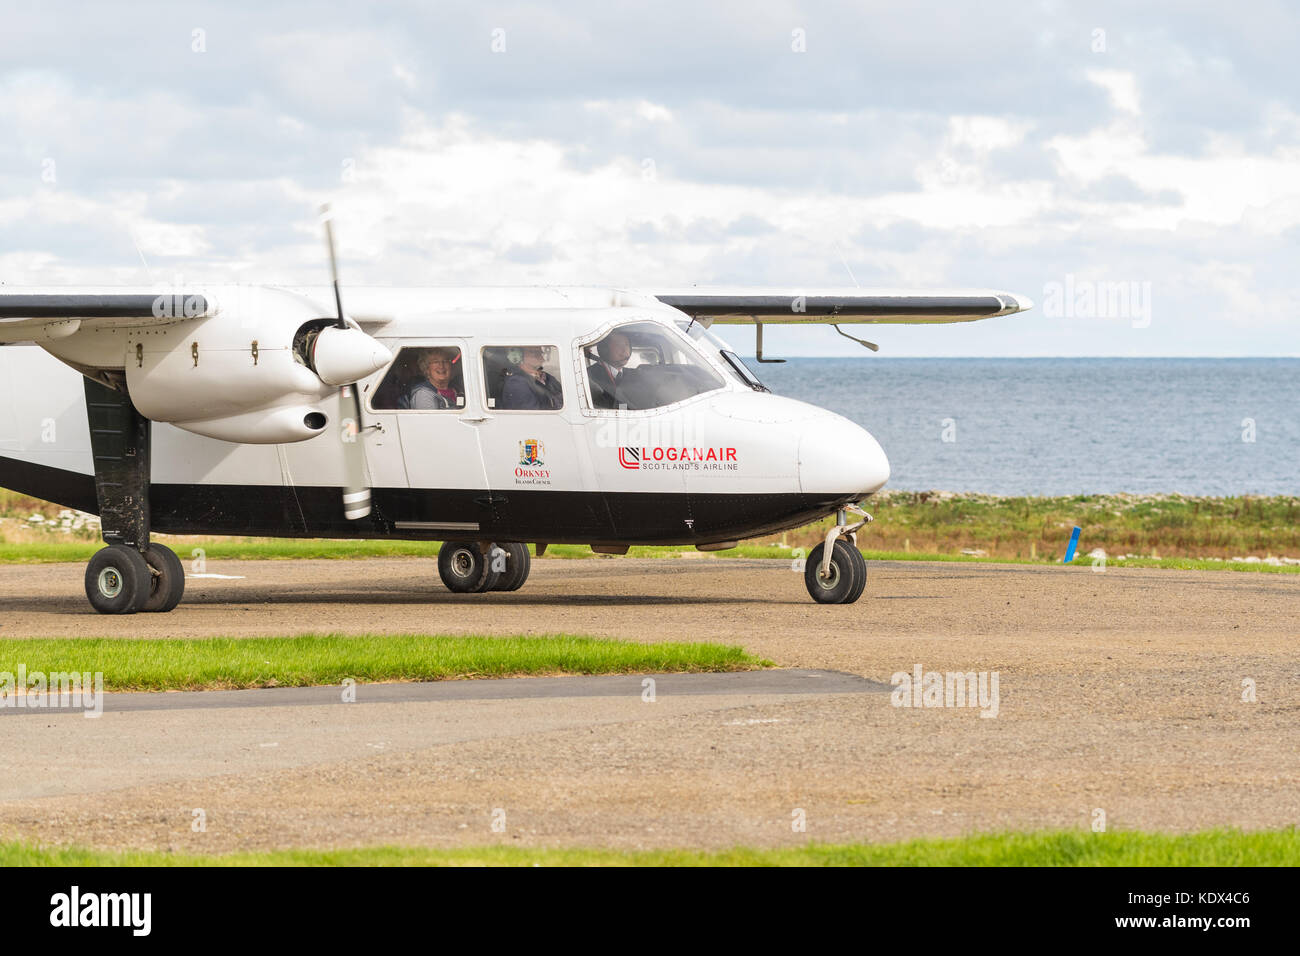 Loganair plane at Westray airport after flying from Papa Westray, Orkney Islands, Scotland, UK - Stock Image